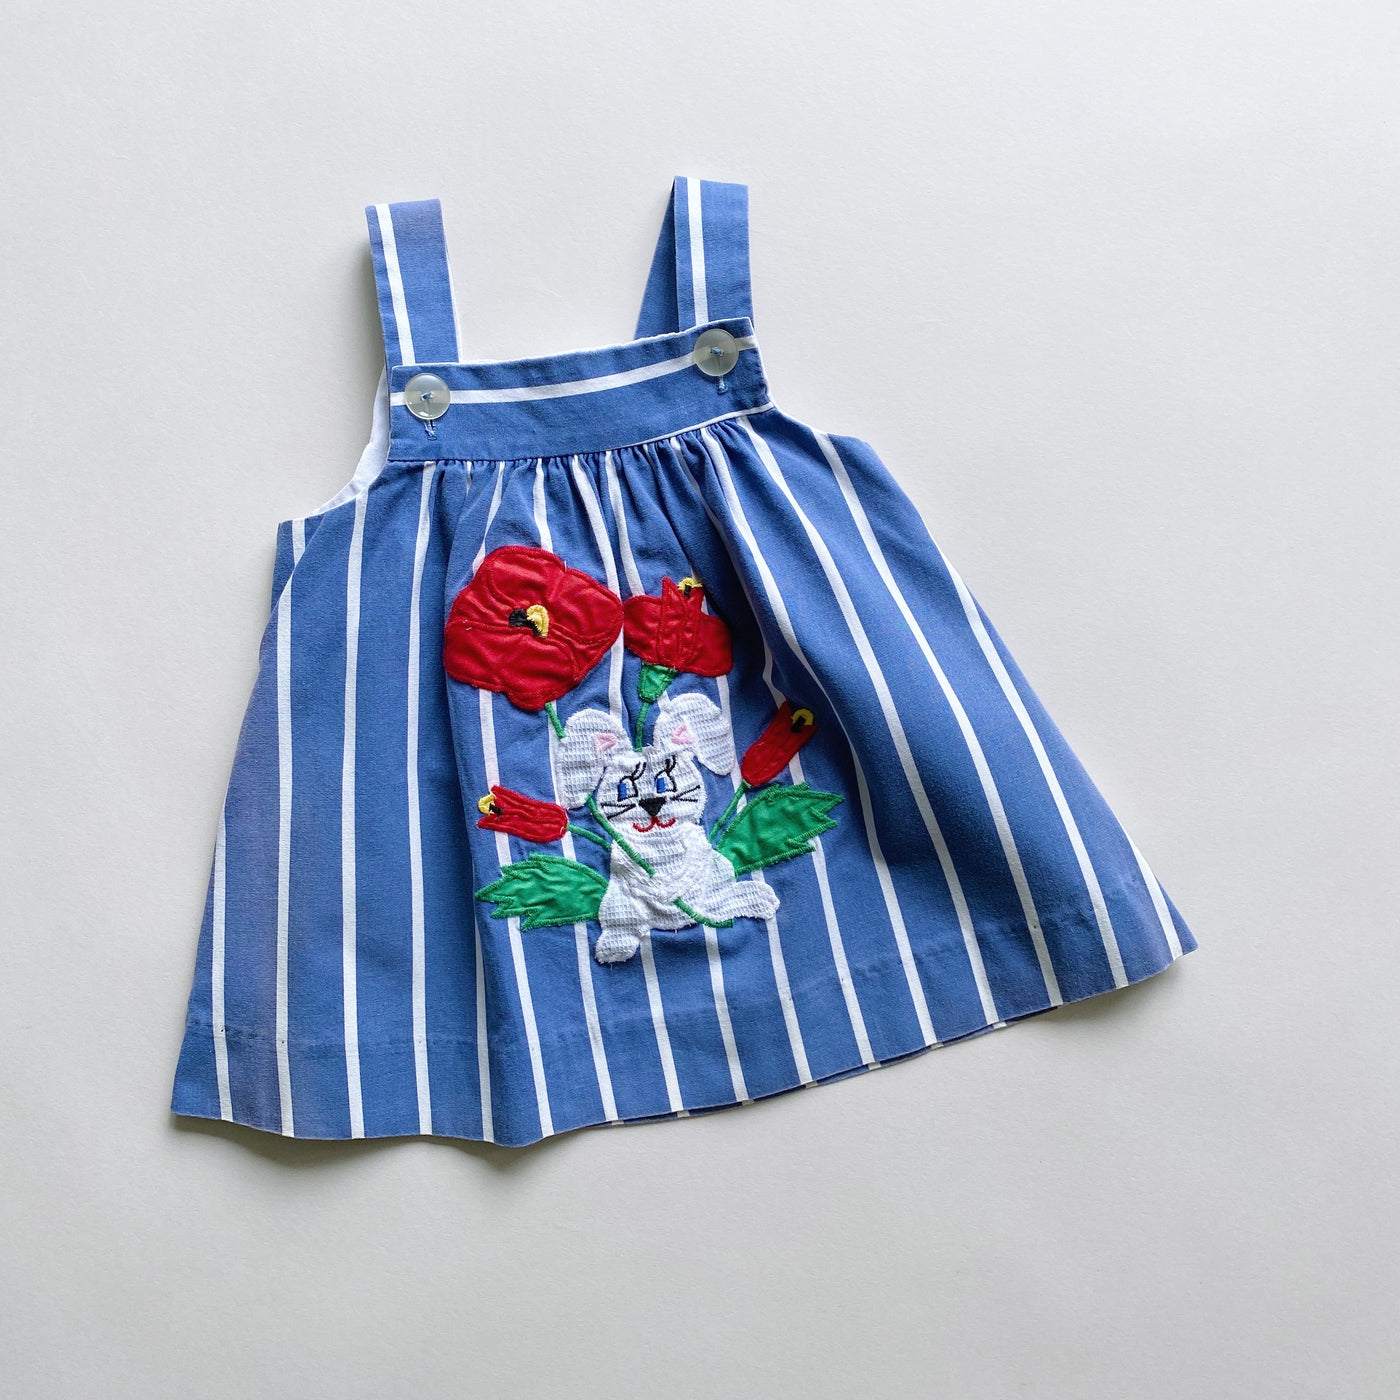 Frog Pond Kids Appliqué Dress / Size 2T